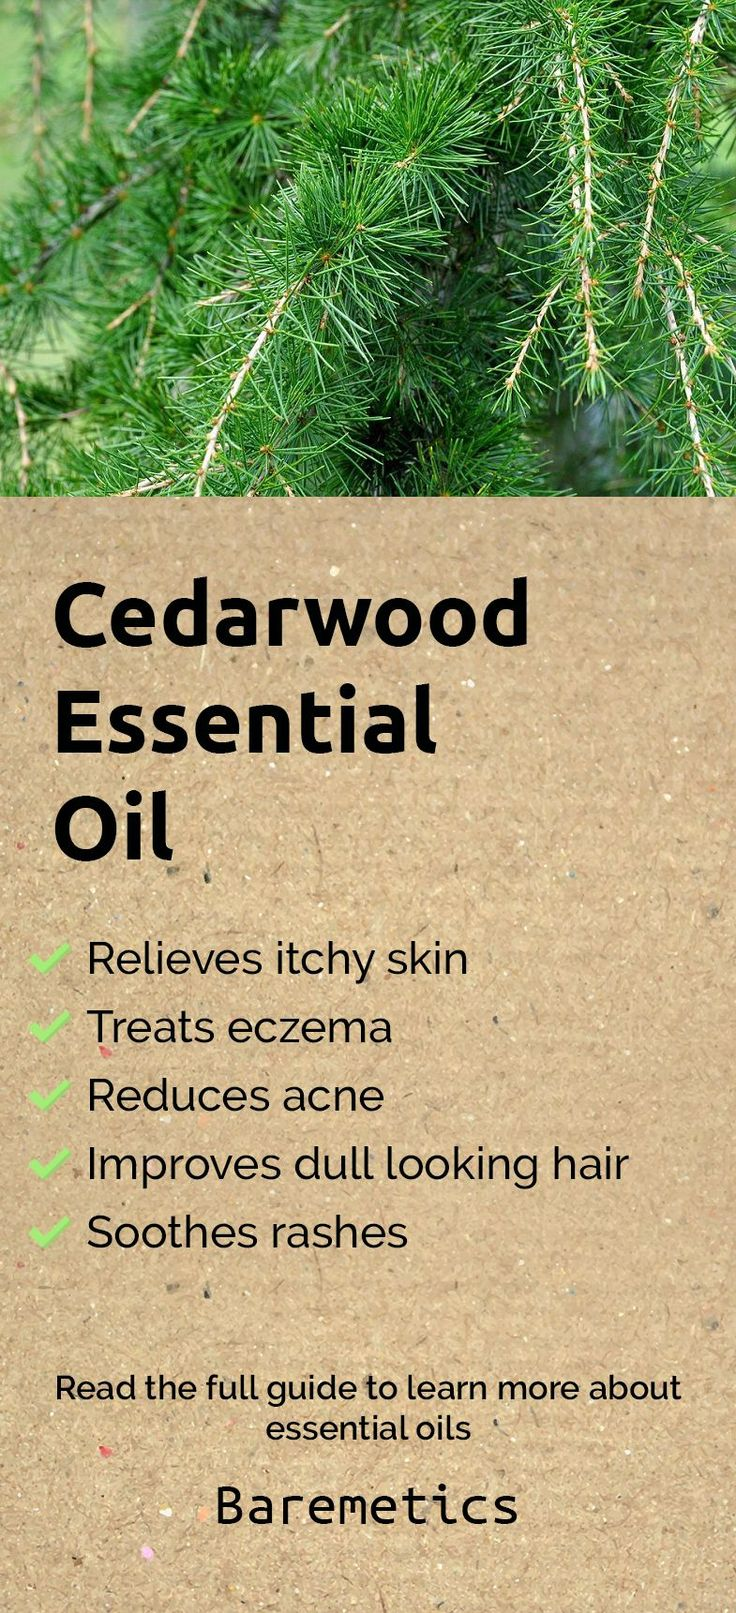 1183 Best Aromatherapy Oils Images On Pinterest Essential Oil Evergreen Reed Diffuser Set Serenity Dream 30 Ml Cedarwood Relieves Itchiness The Skin Treats Eczema Heals Acne Calms